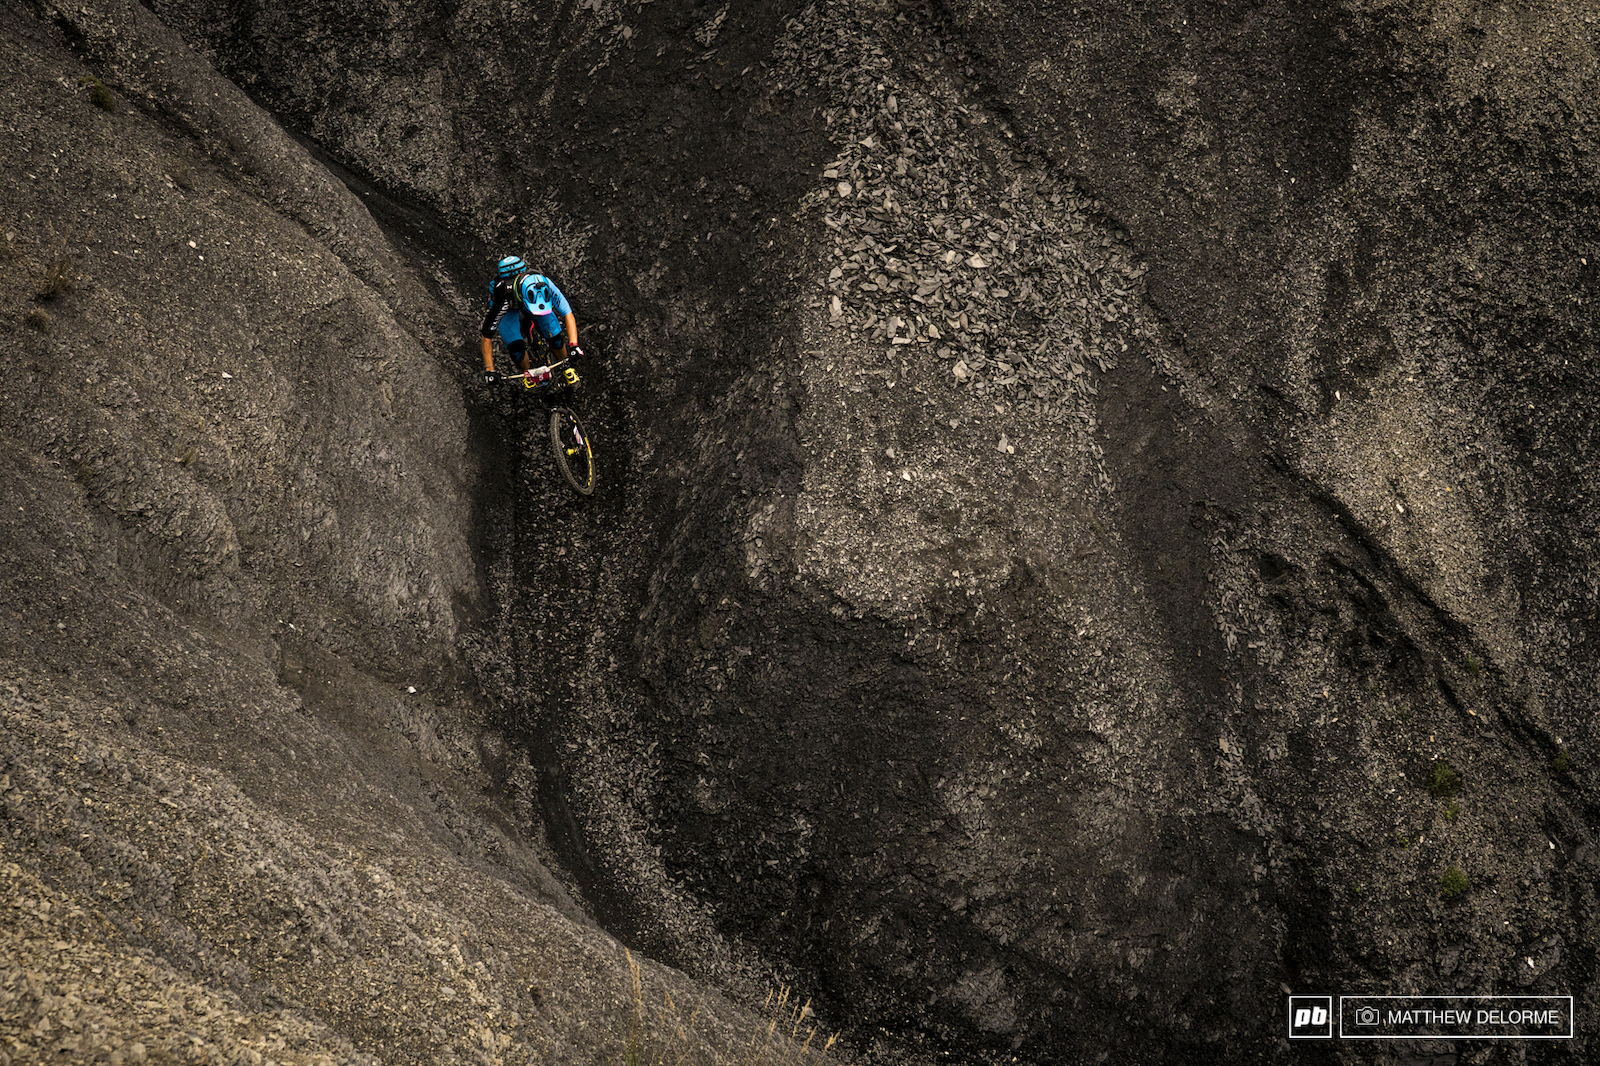 Grey Earth. Looks like an old Match Stick Productions freeride spot for trail bikes.